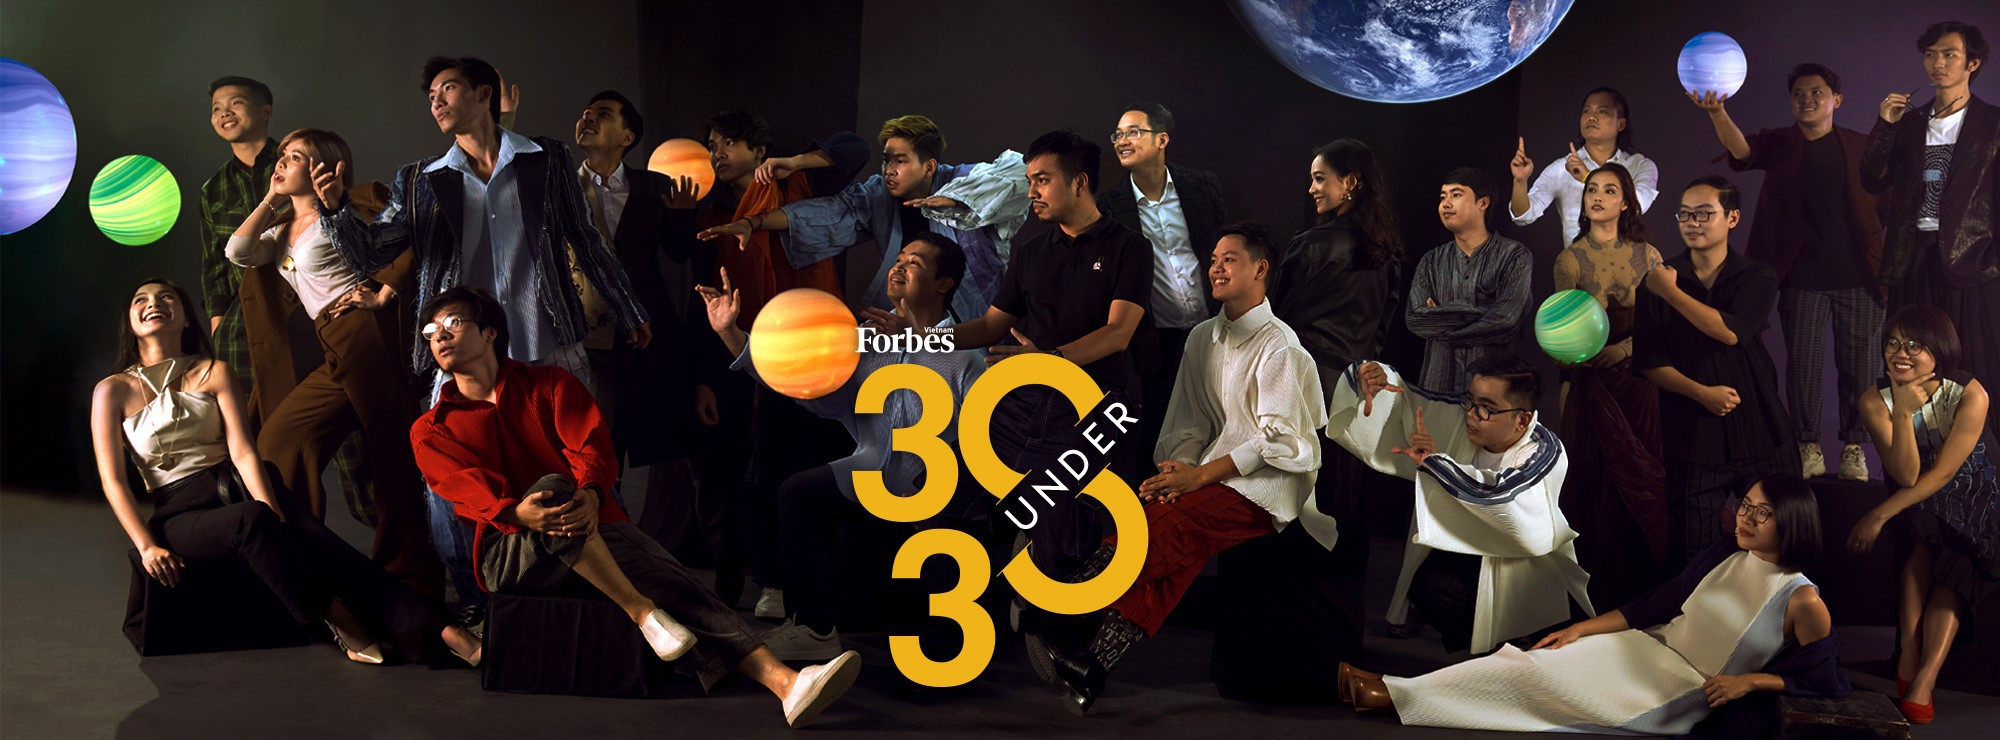 "Forbes Vietnam honore ""30 under 30"" en 2020."